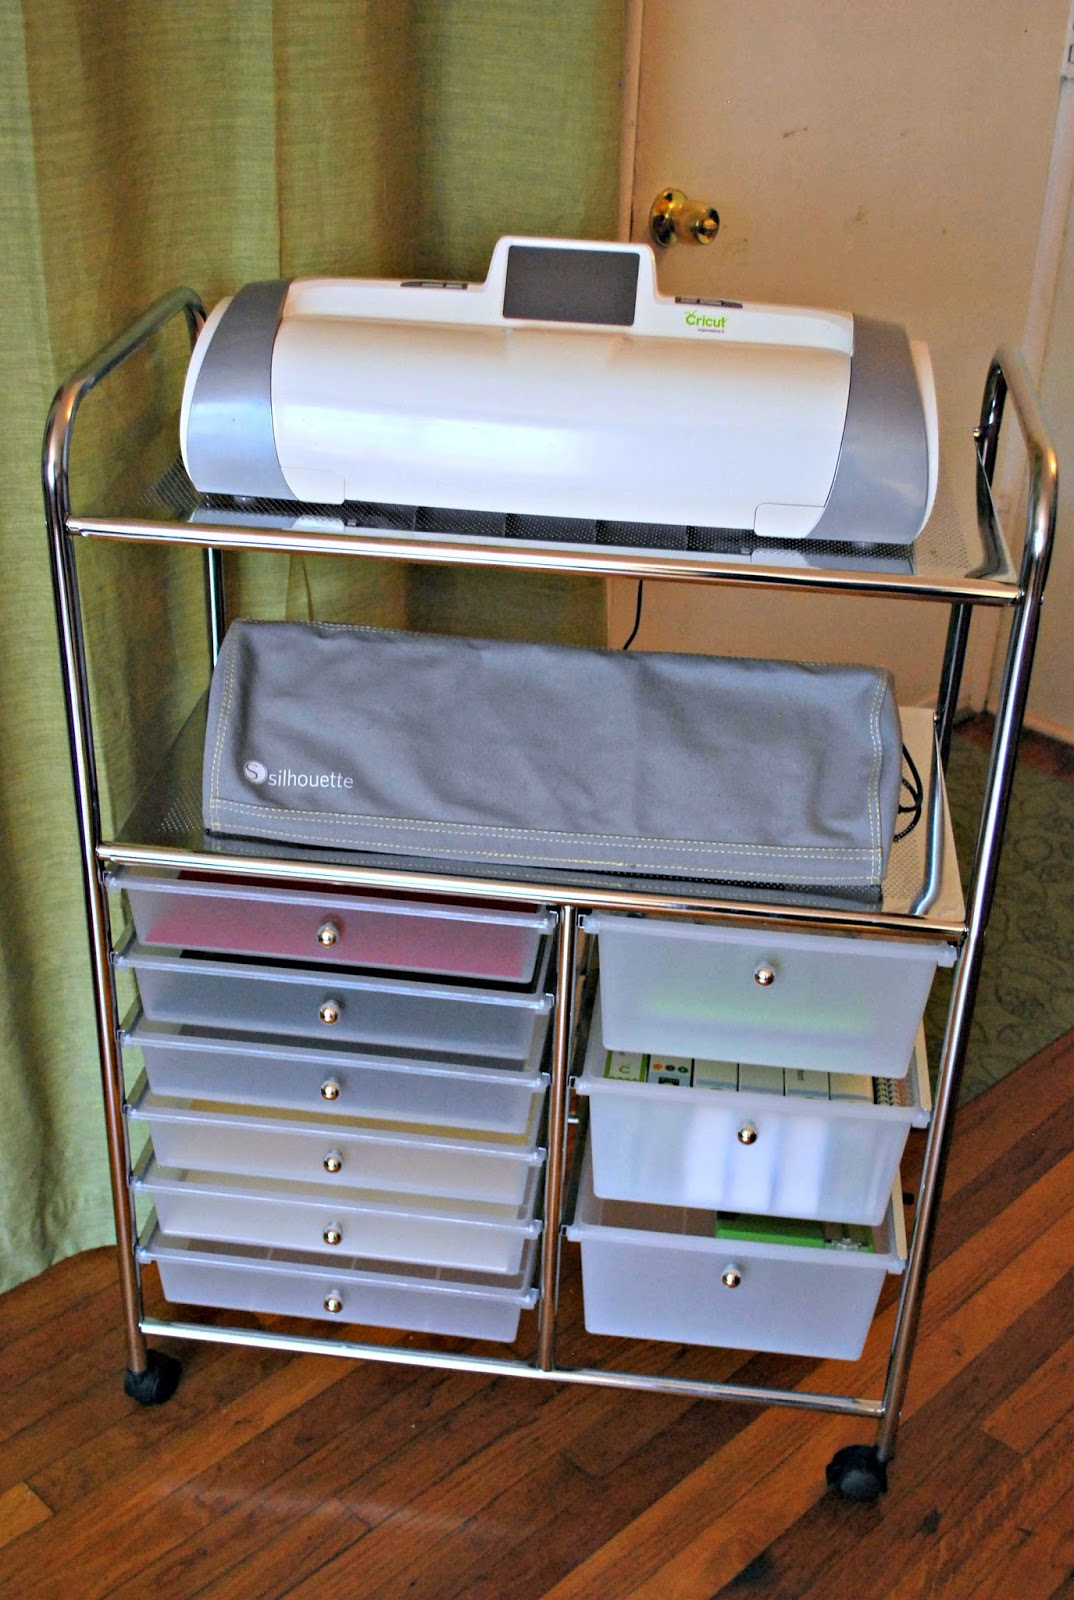 5 Drawer Mobile Work Center p 1716 additionally Gazebo Penguin 18 039 Four Season Solarium 15650574 also 204856169 in addition 401079228857 together with A Fabulous Cricut Silhouette Storage. on rolling utility cart with drawers